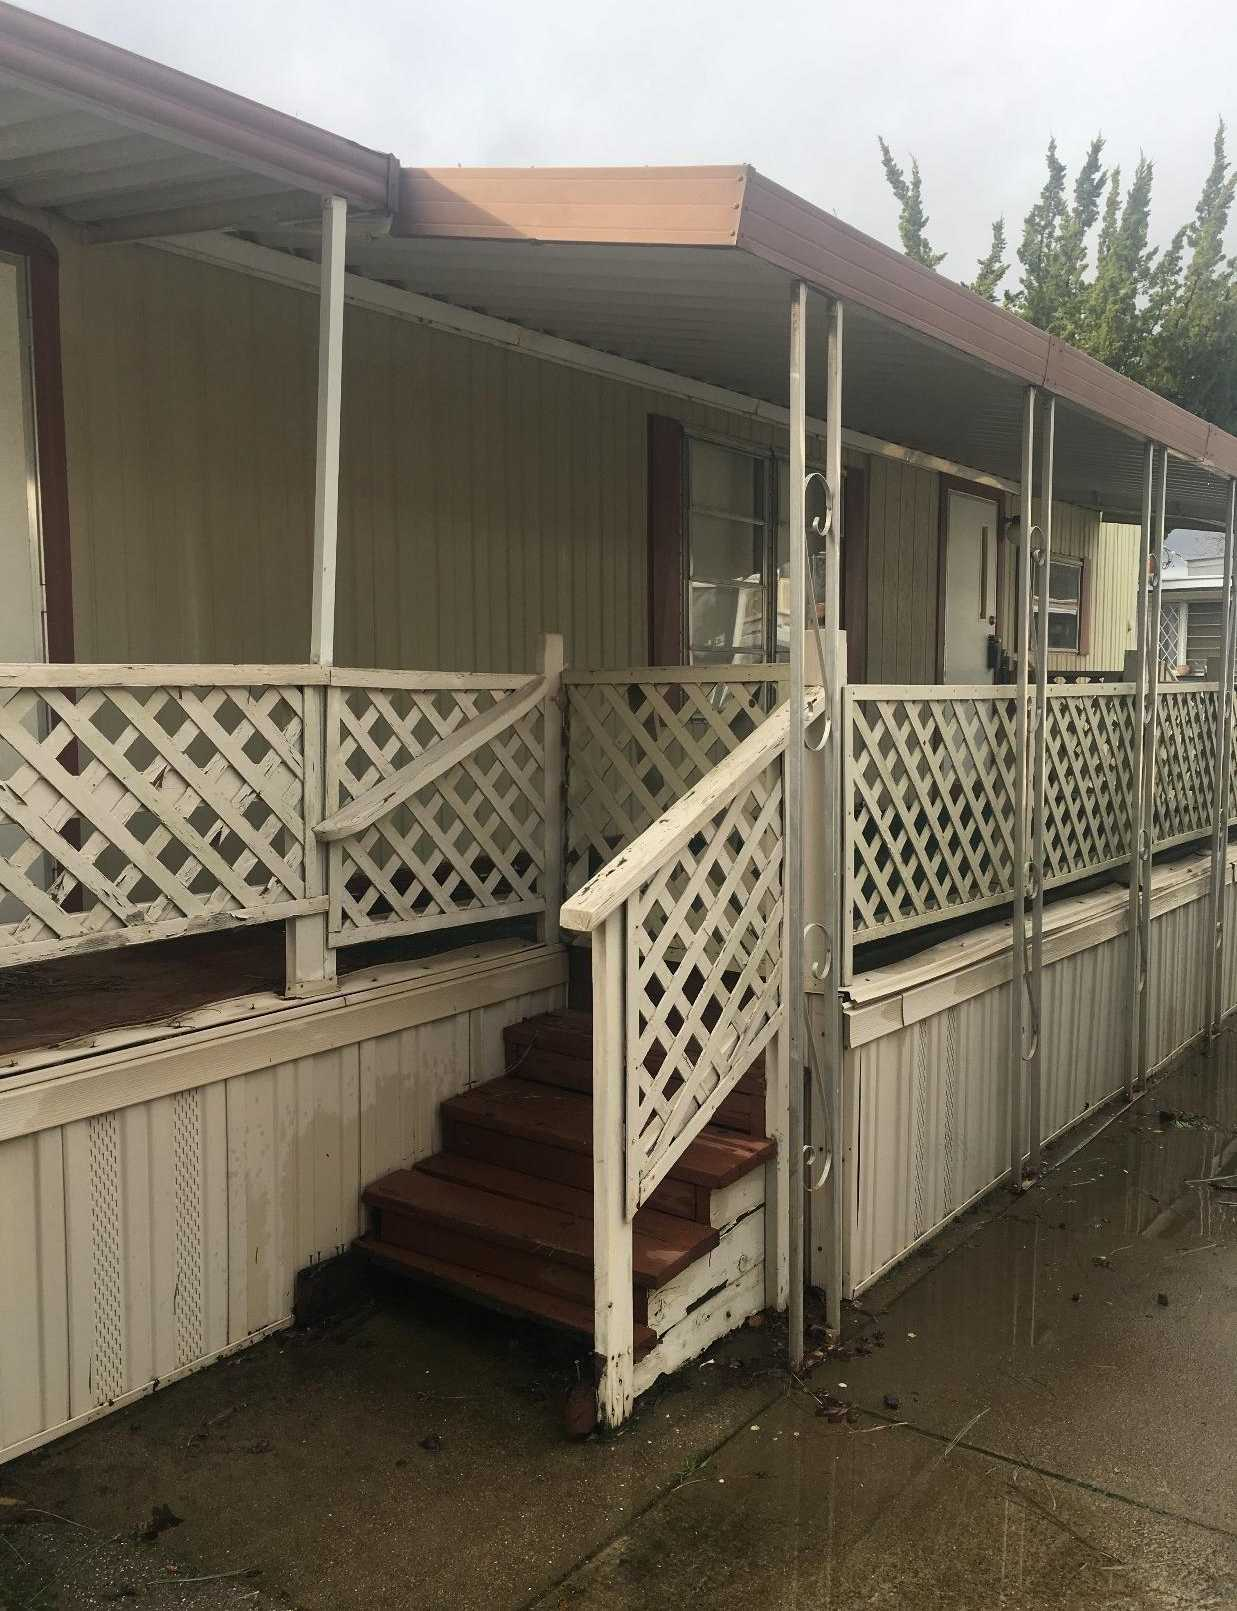 $6,000 - 2Br/1Ba -  for Sale in Placerville